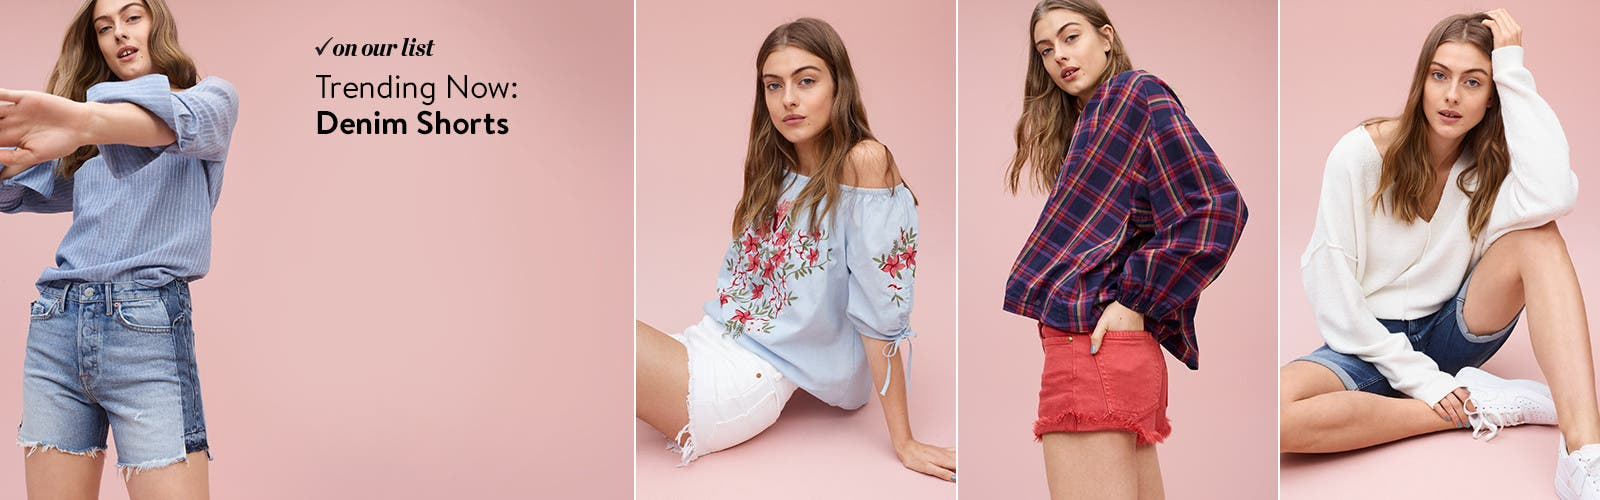 Trending now: denim shorts.